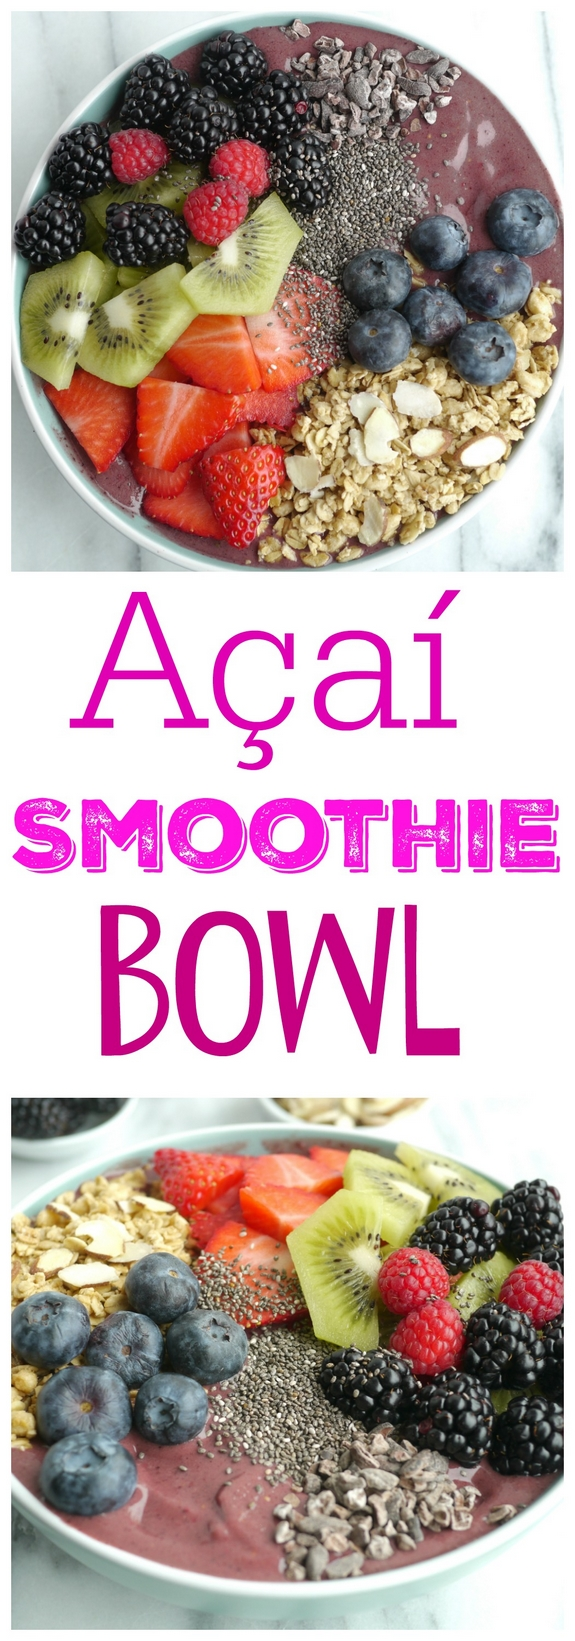 Add this delicious Açaí Smoothie Bowl to your morning routine and you will look forward to your alarm clock going off every day! If you're drinking your morning smoothie out of a glass, you're doing it wrong from NoblePig.com via @cmpollak1